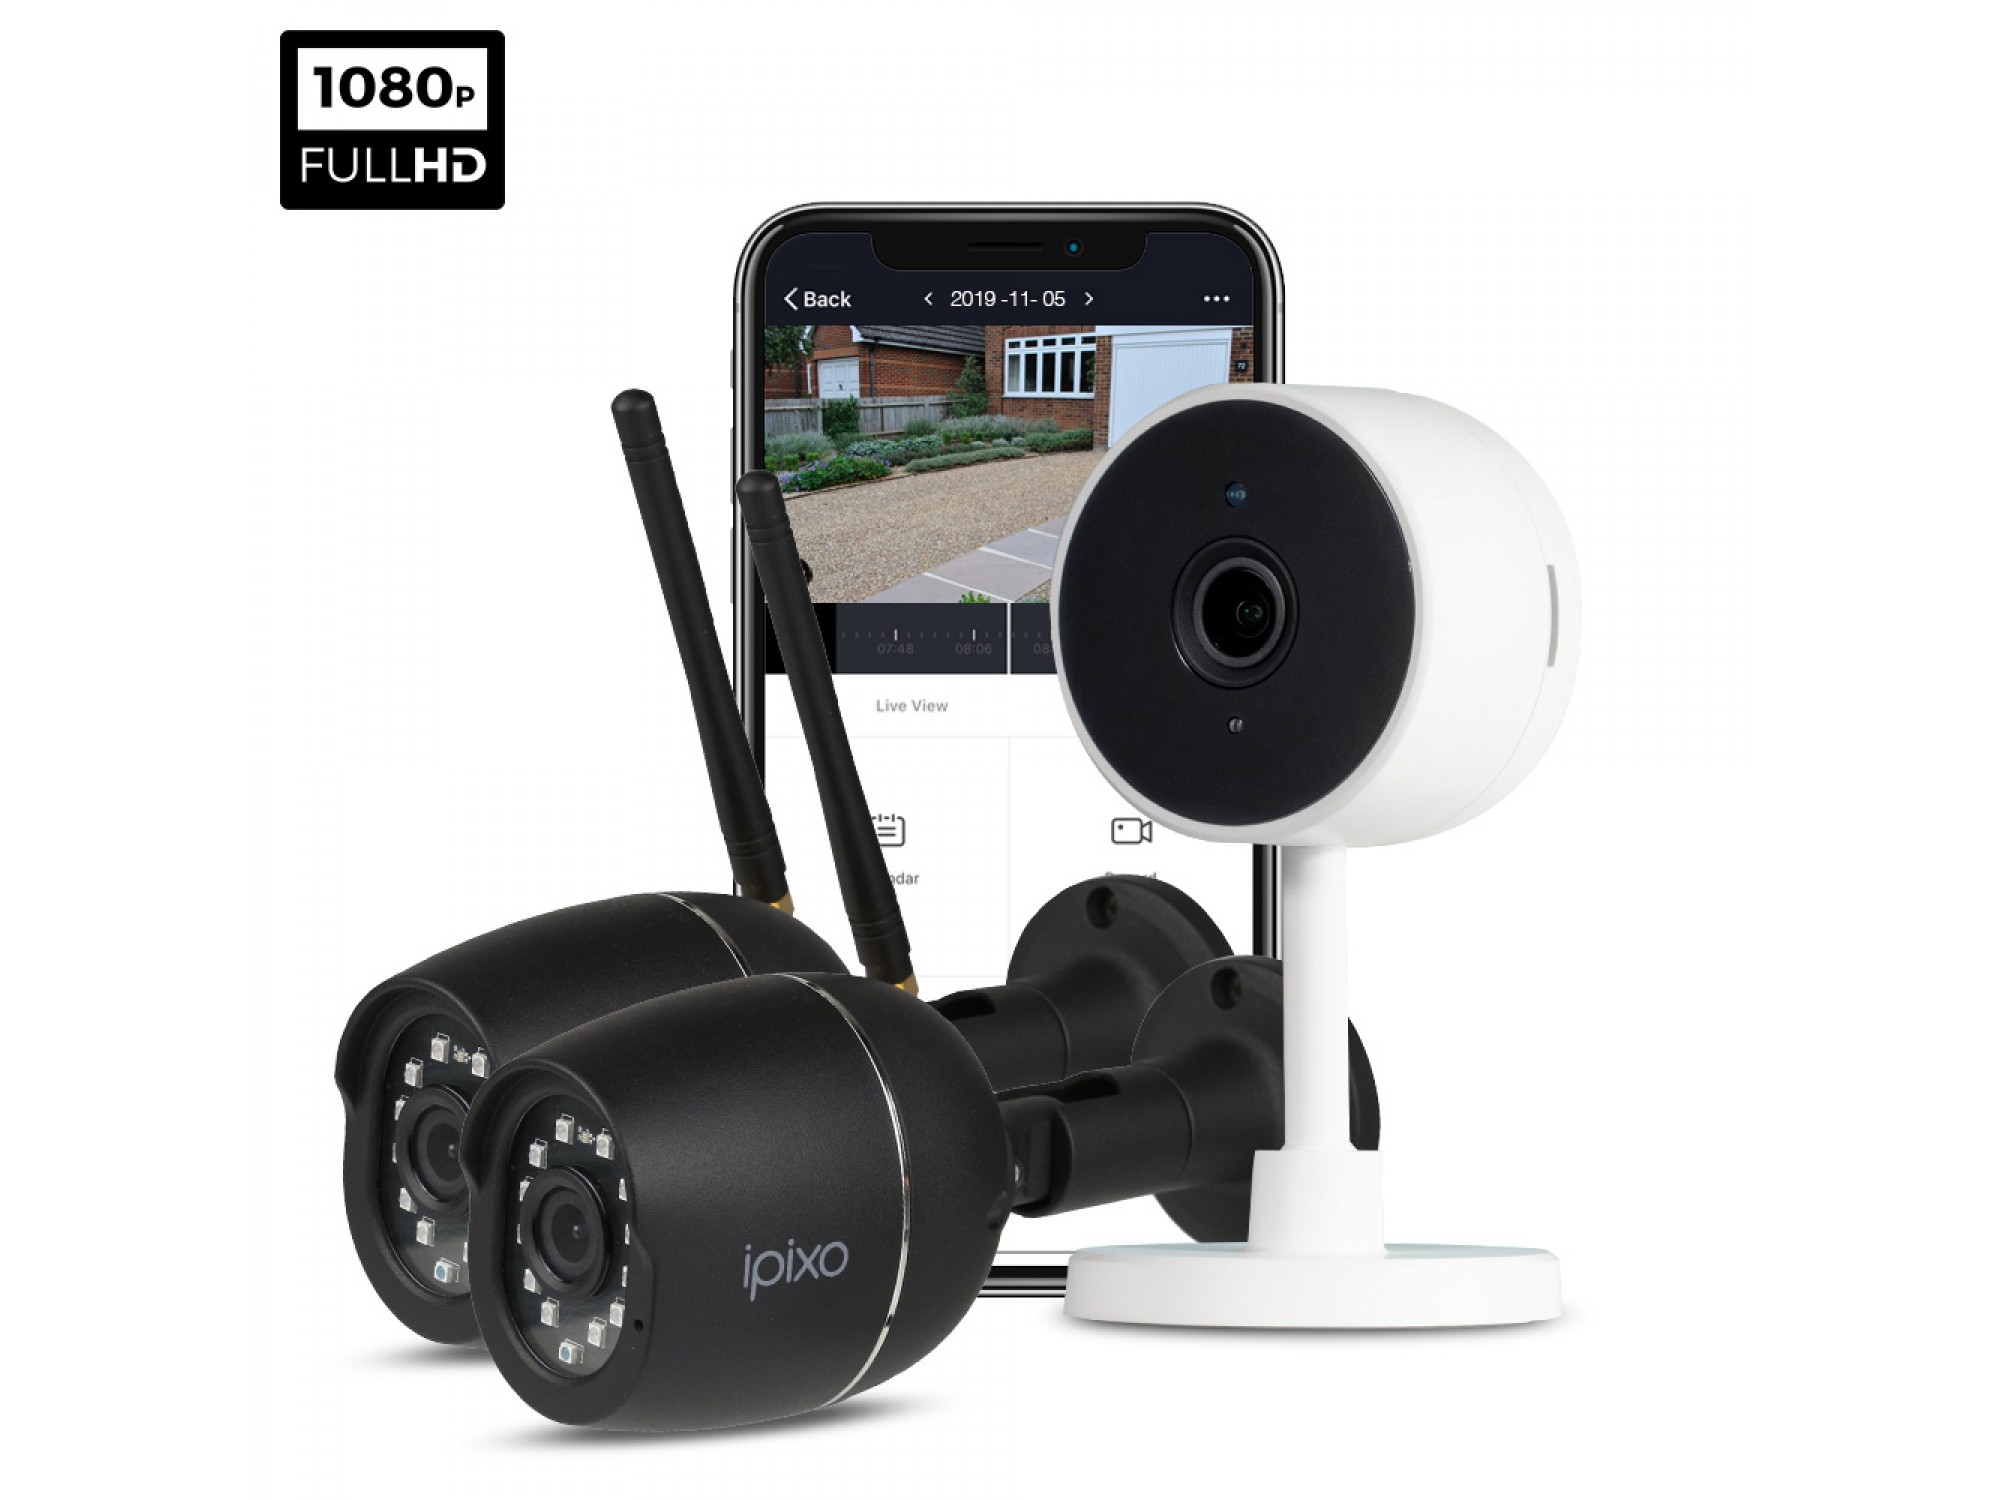 ipixo 1080p WiFi Home Security Camera System. 1 Indoor + 2 Outdoor WiFi Security Cameras